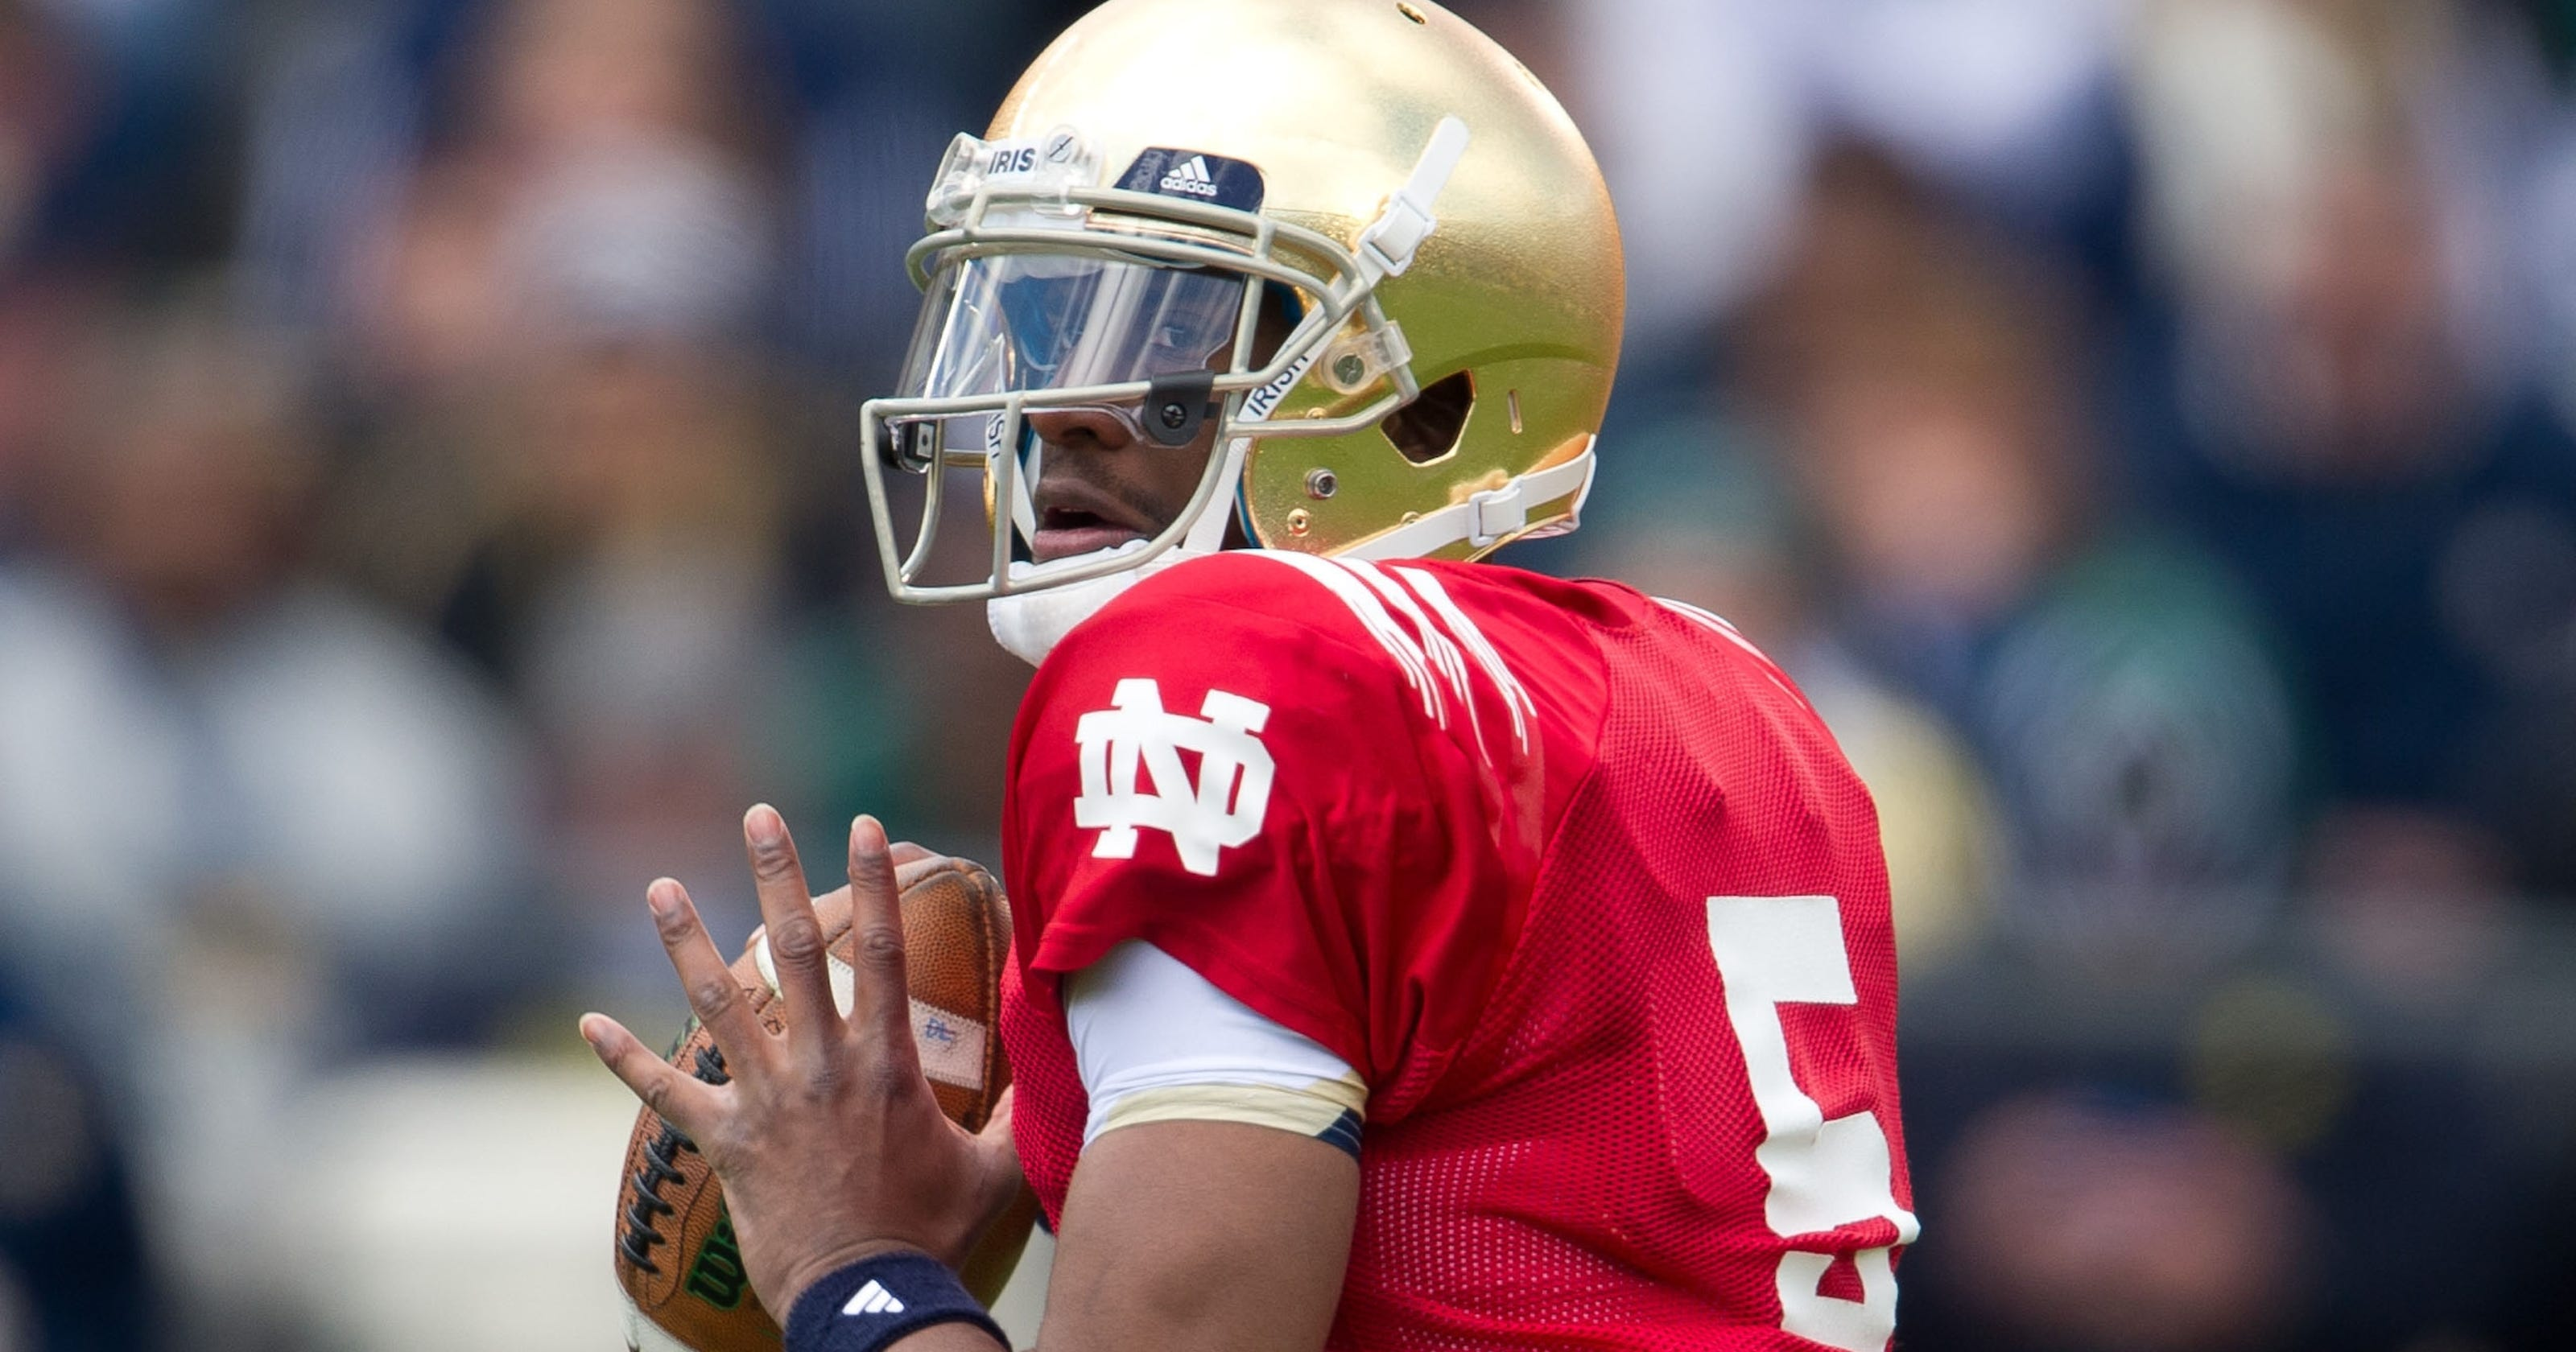 1e8d9f26026 Notre Dame QB Everett Golson no longer in school